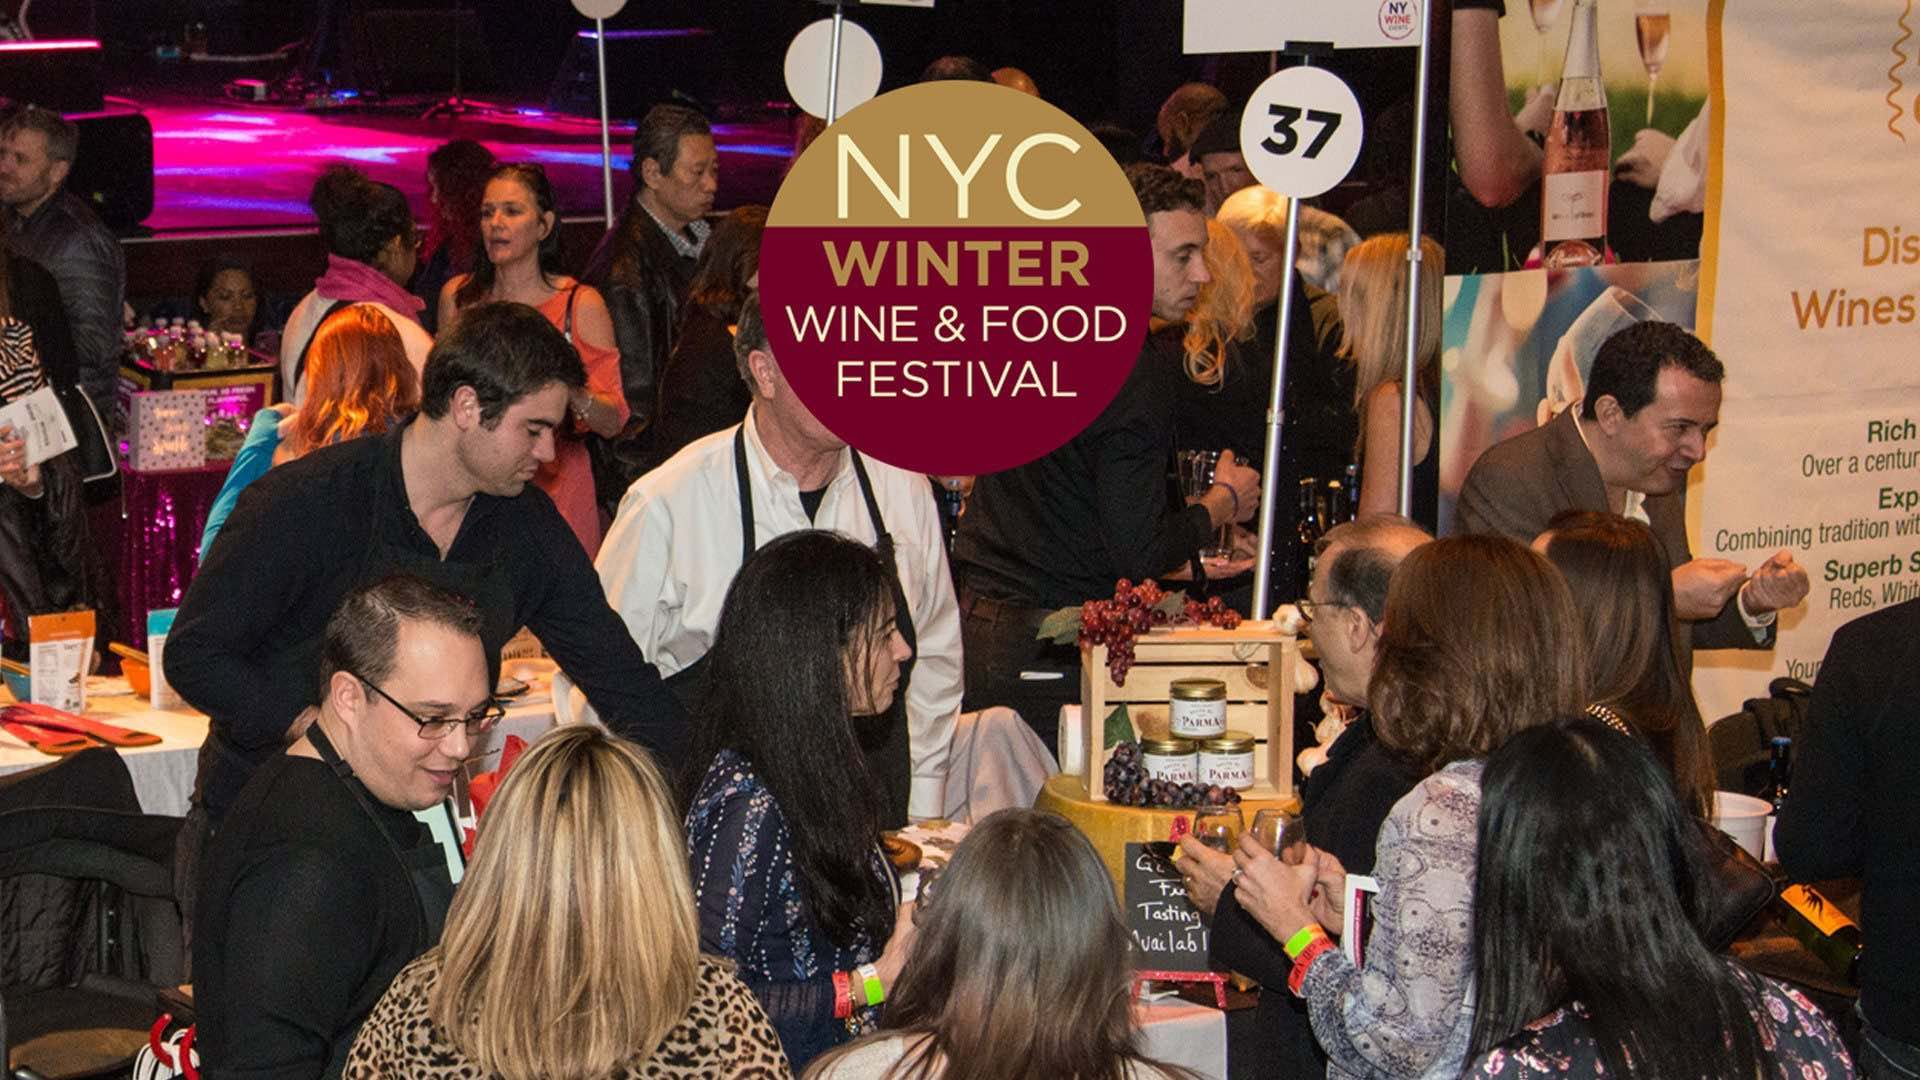 NYC Winter Wine & Food Festival